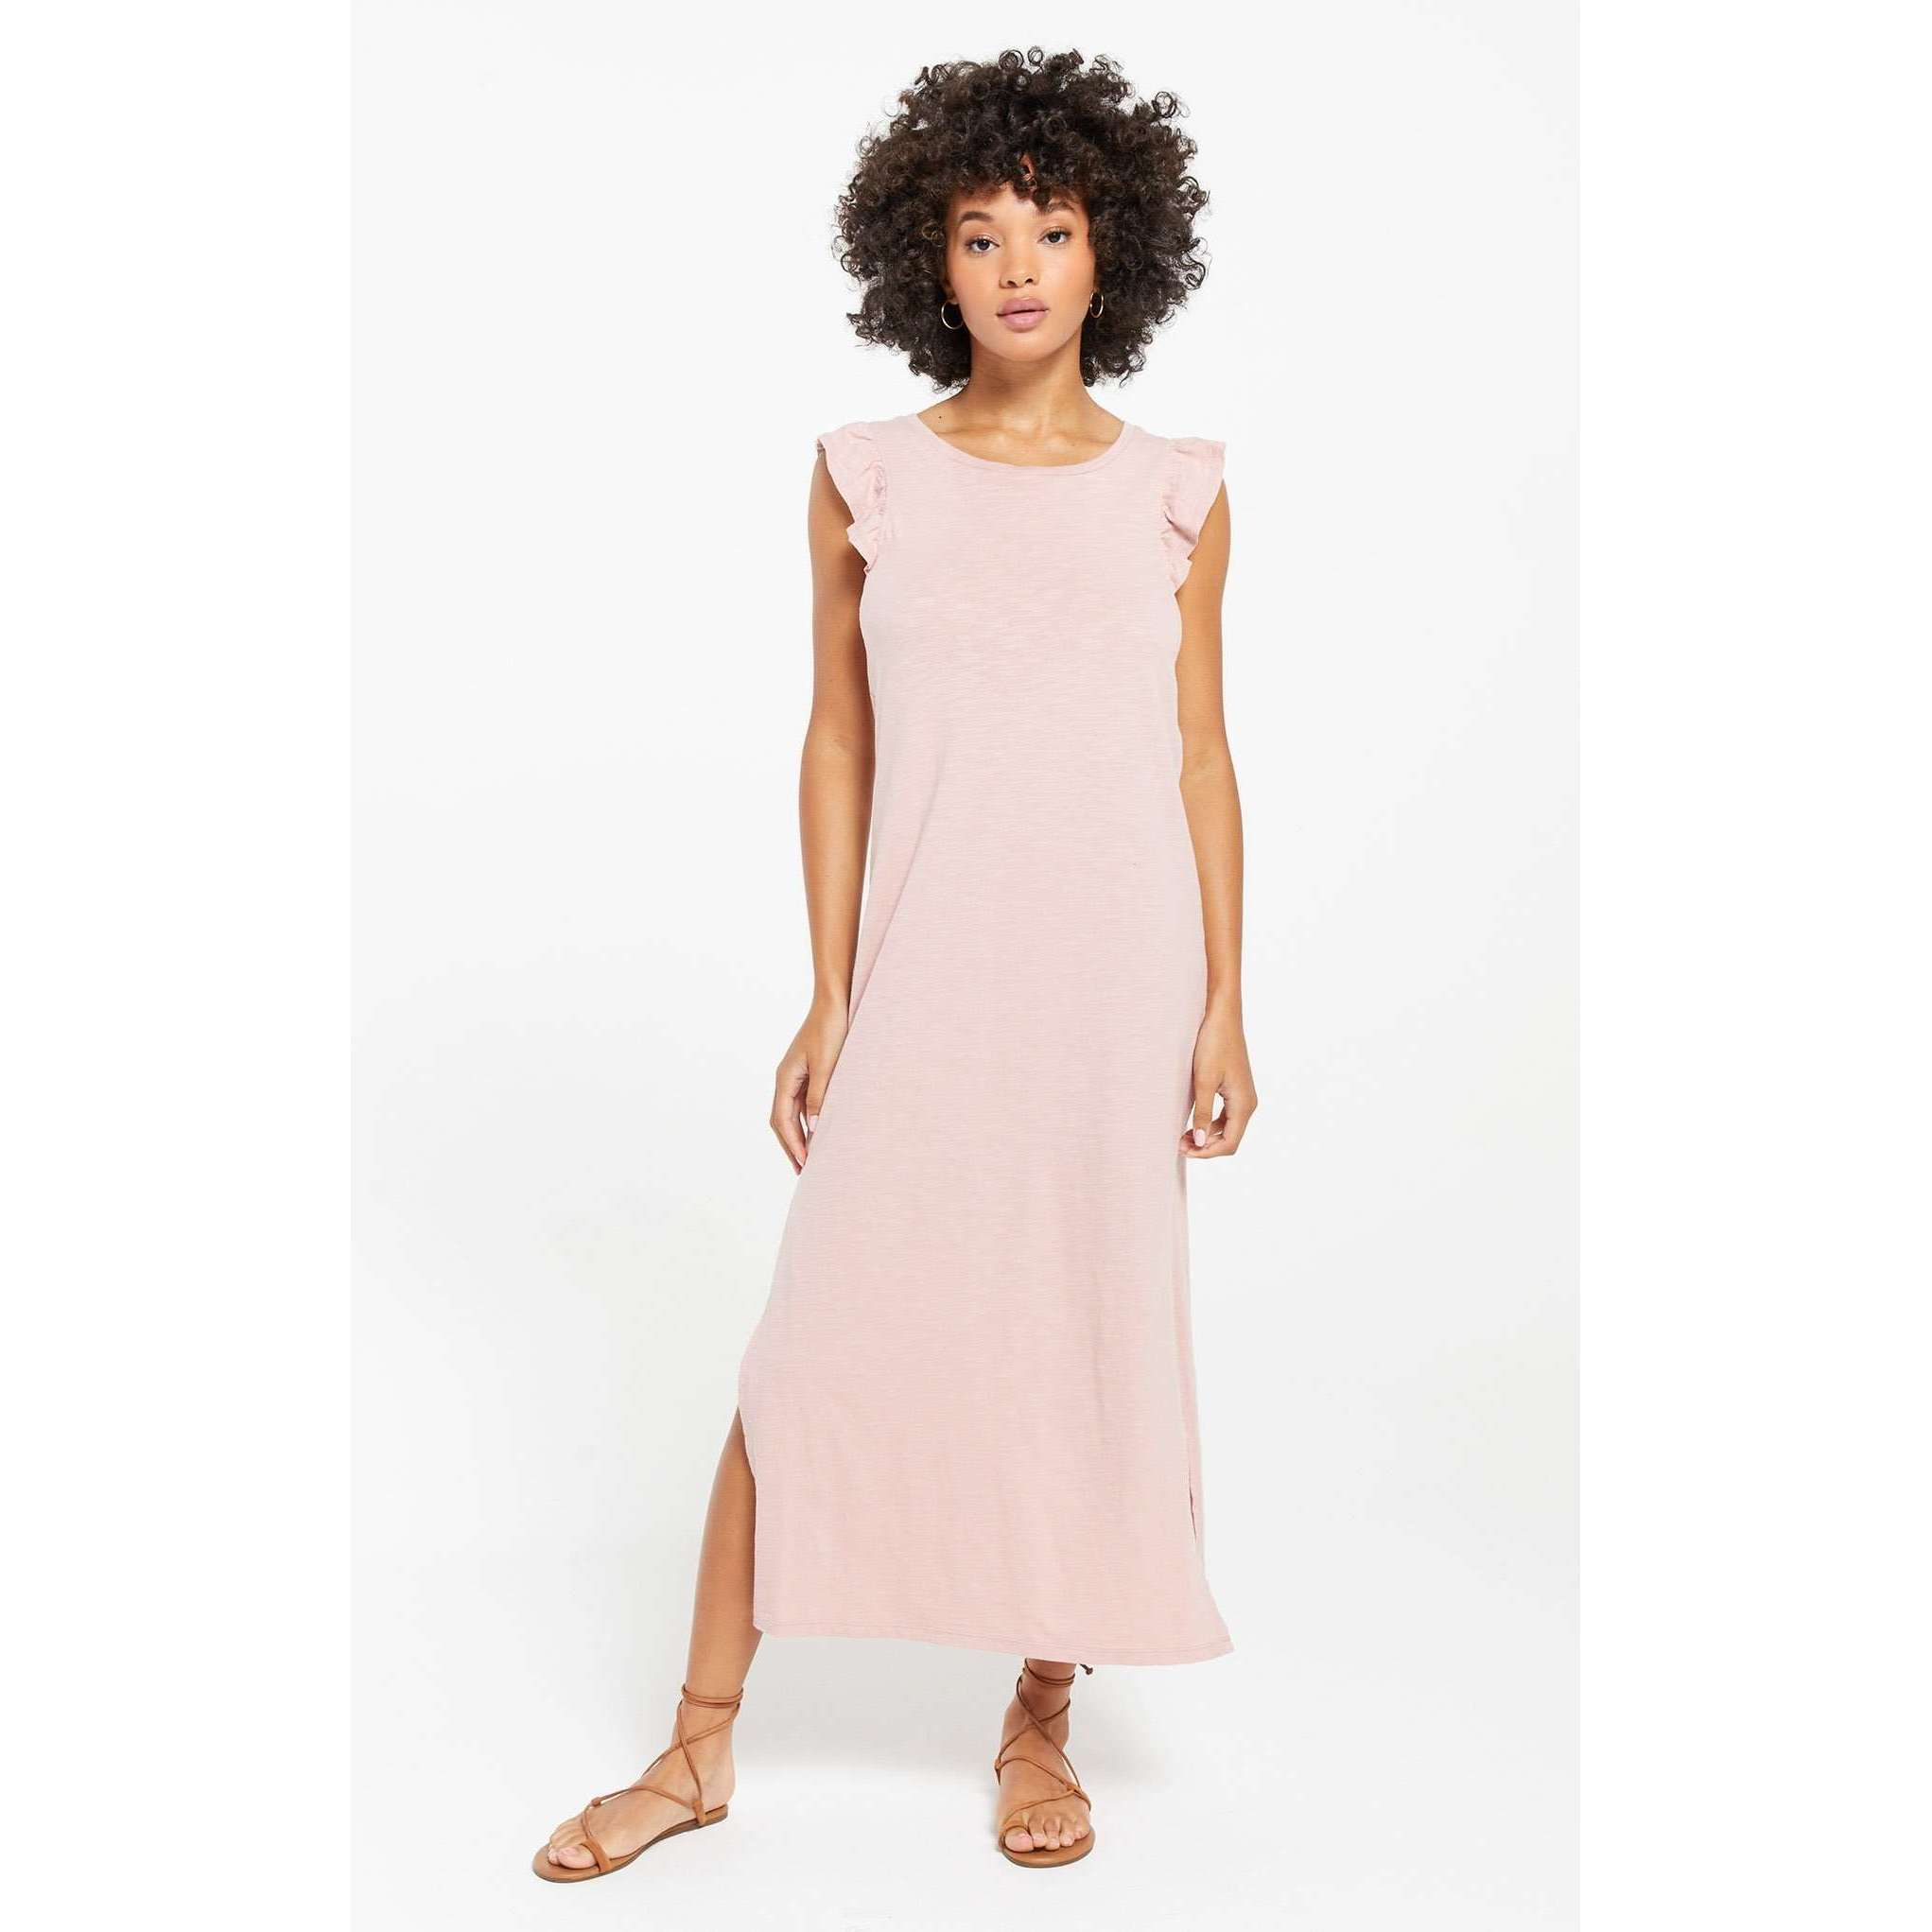 8.28 Boutique:Z-Supply,Z-Supply Blakely Slub Ruffle Dress,Dress